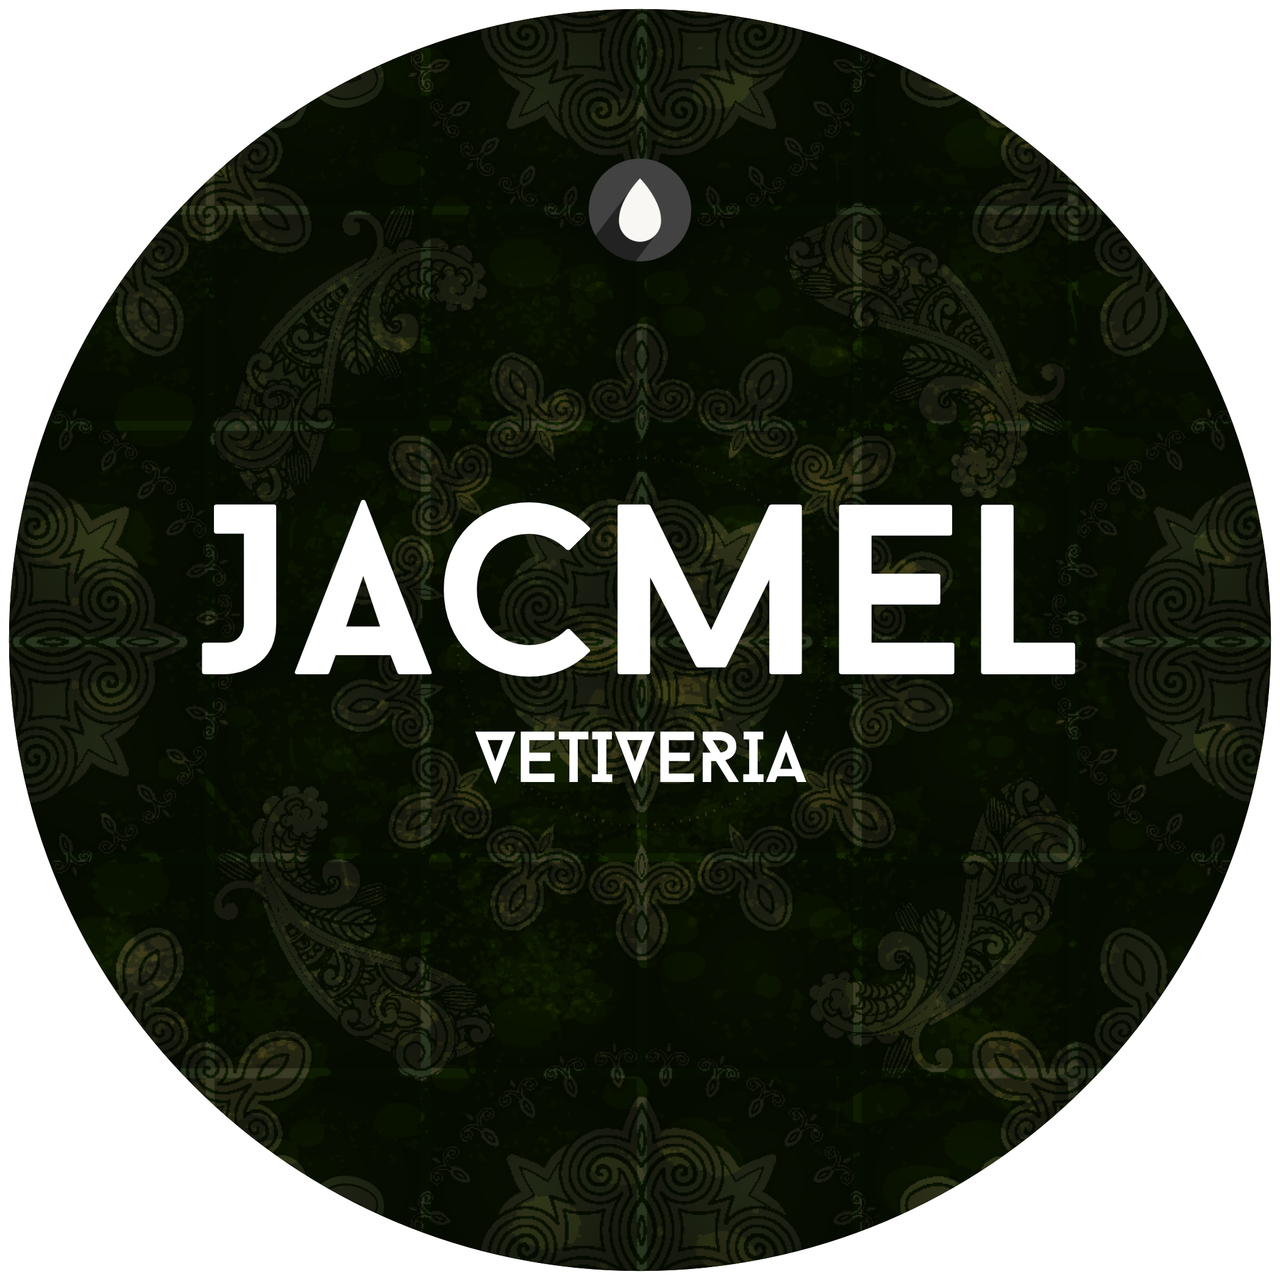 Chicago Grooming Co. (Formerly Oleo Soapworks) - Jacmel Vetiveria - Soap image